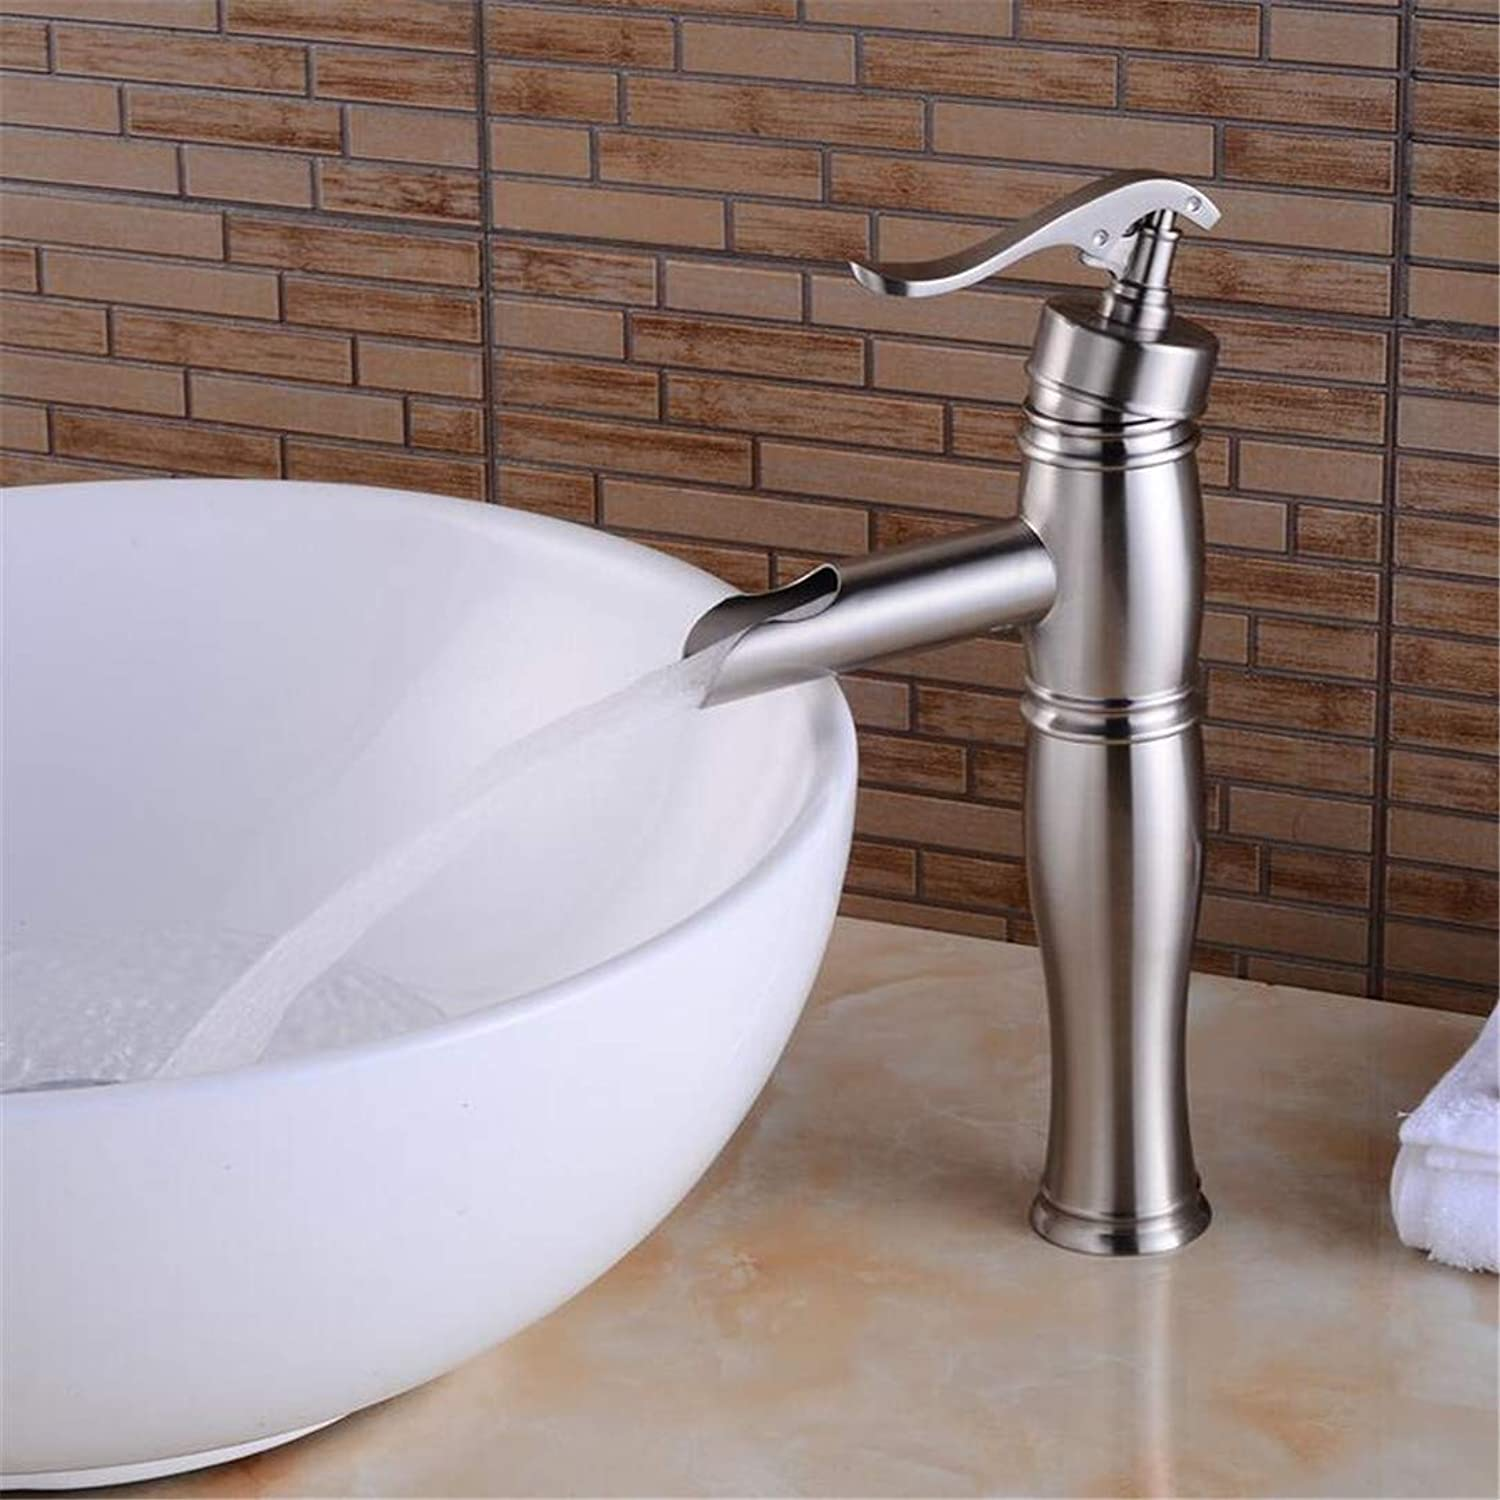 Faucet Washbasin Mixer ?Single Hole Deck Mounted Mixer Taps Bathroom Hot and Cold Water Basin Faucets